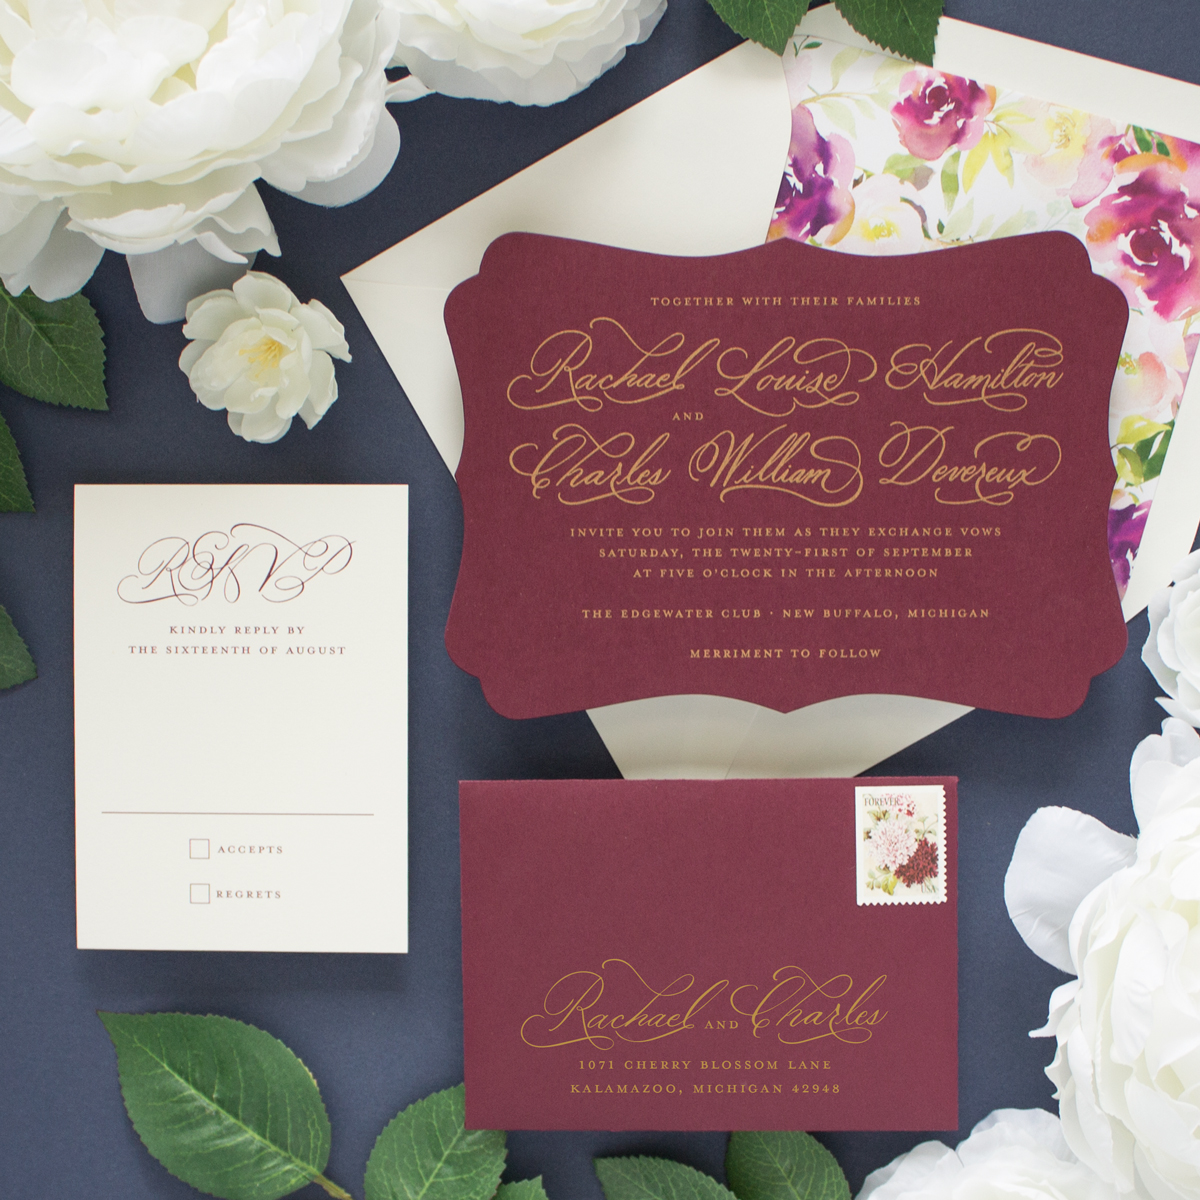 Cherished | Gold and Burgundy Wedding Invitations - Banter and Charm